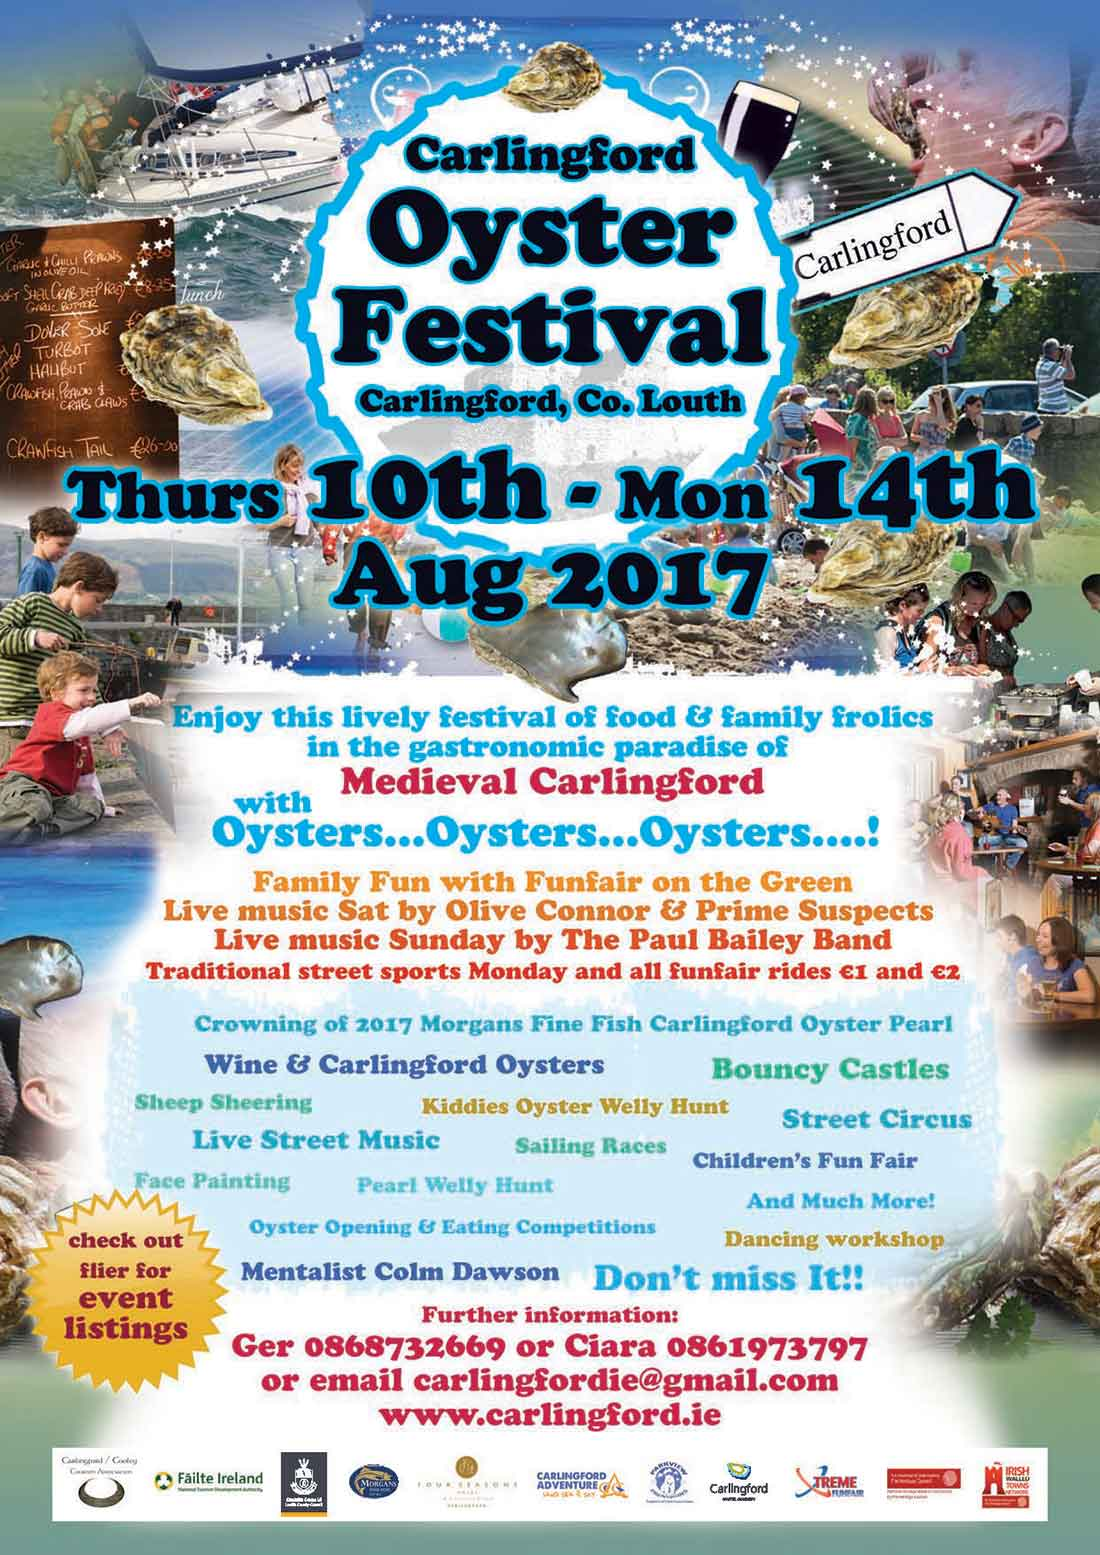 Carlingford Oyster Festival 2017 Flyer